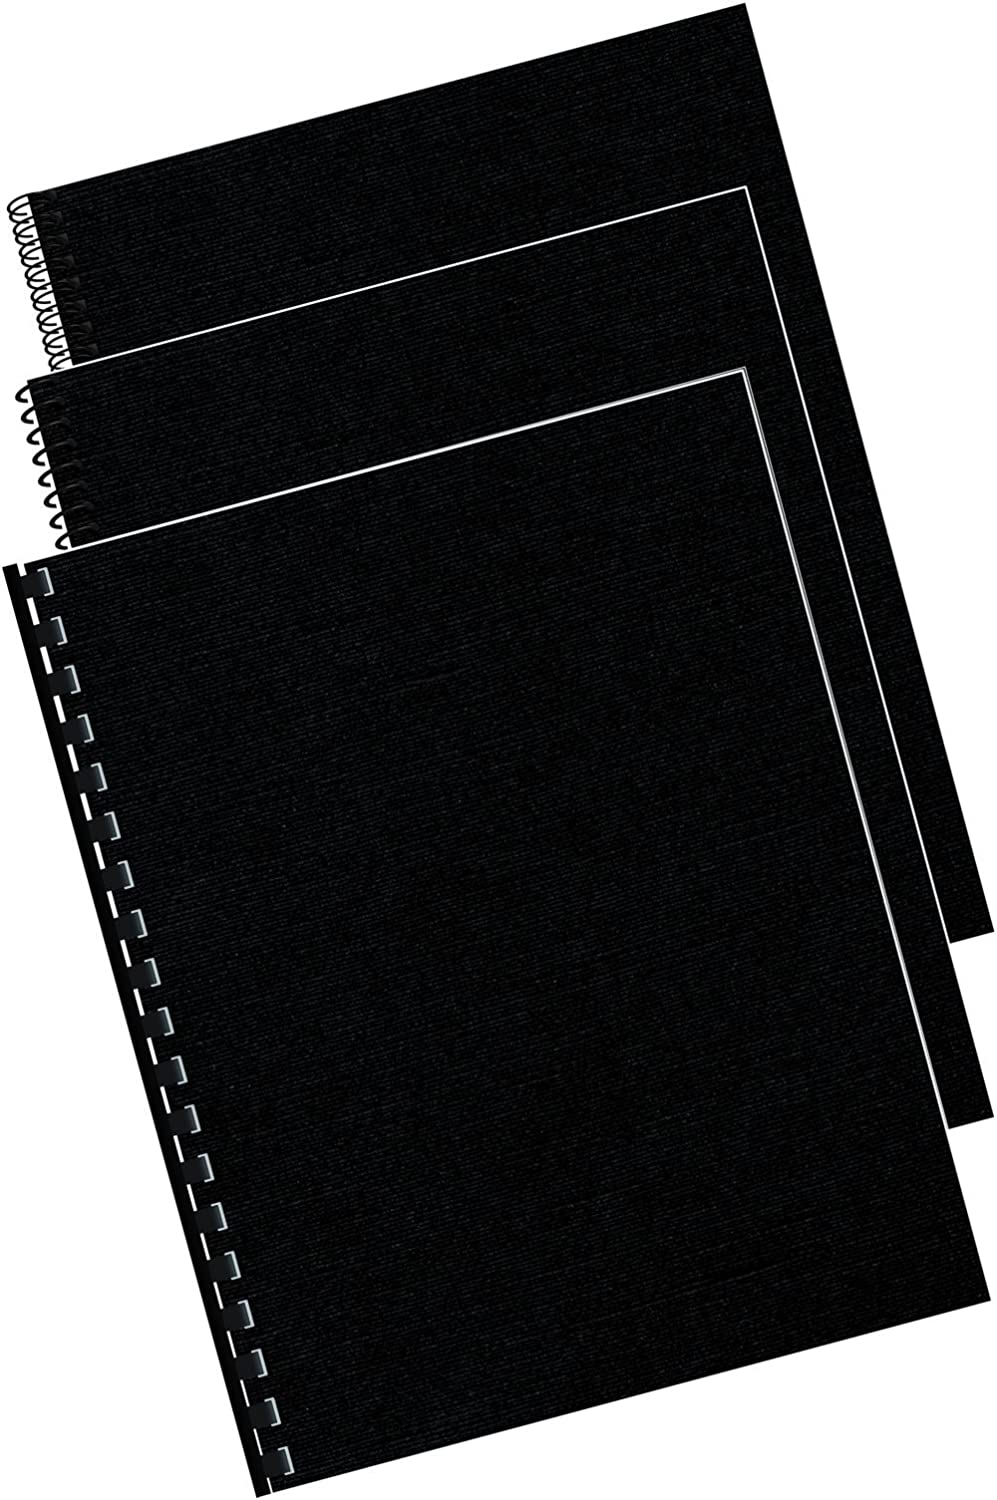 Fellowes Binding Linen Presentation Covers, Letter, Black, 200 Pack (5217001) : Binding Covers : Office Products